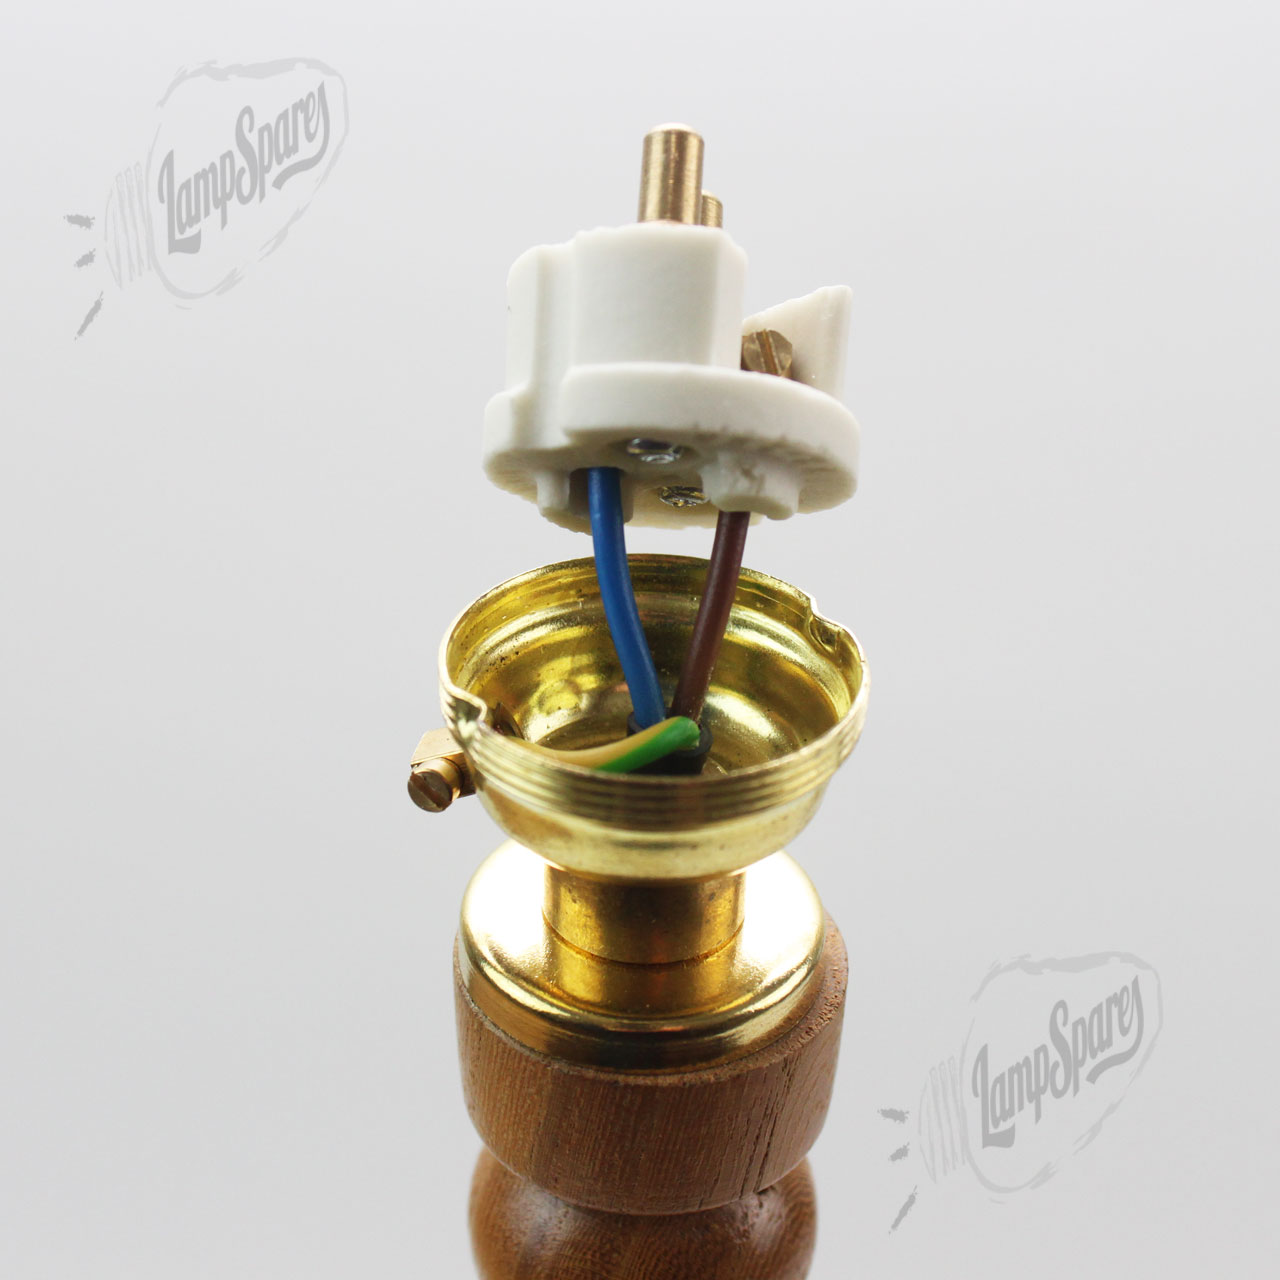 Wiring Lamp Socket Uk